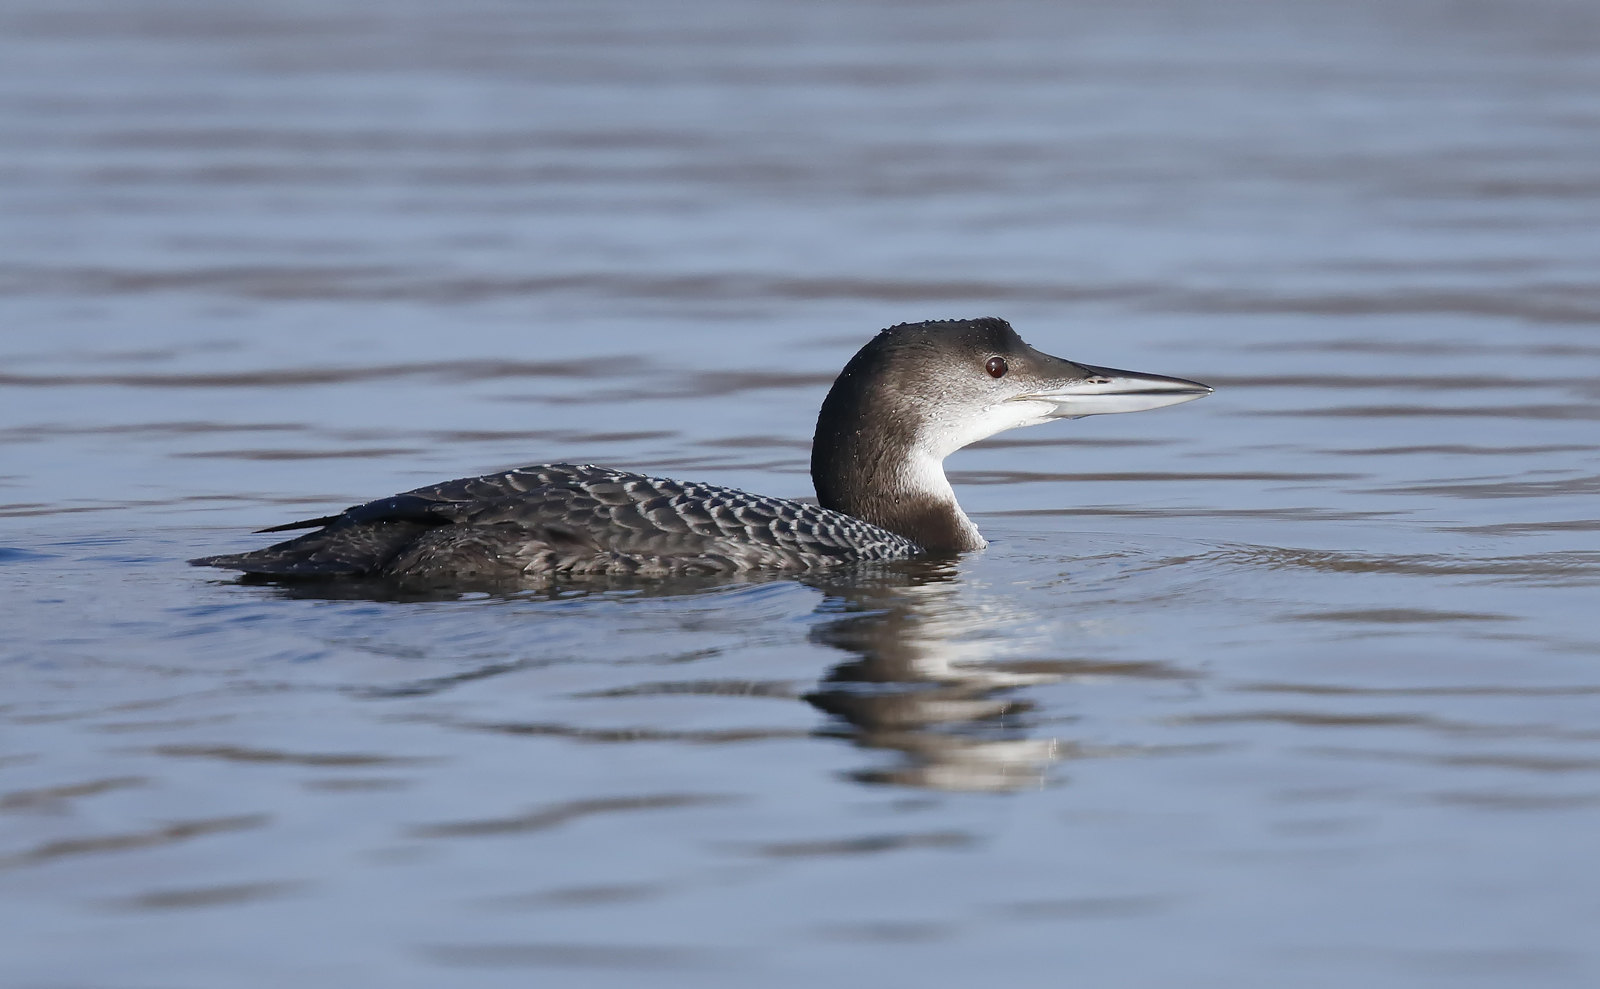 Juv. Great Northern Diver